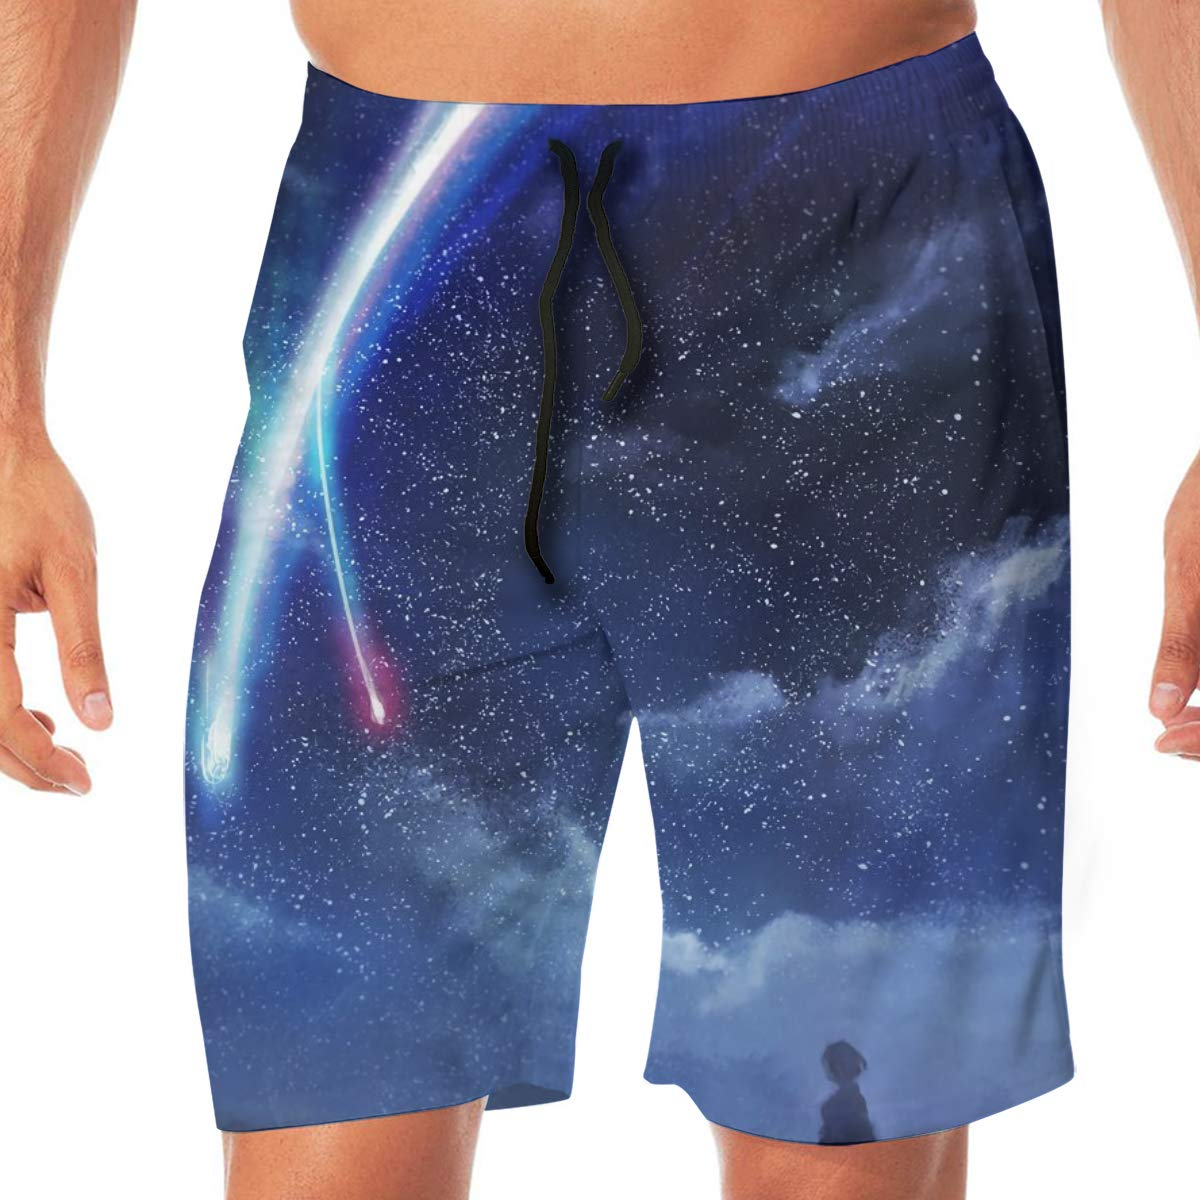 Wengua Quick Drying Beautiful Starry Sky Printed Workout Shorts No Mesh Lining